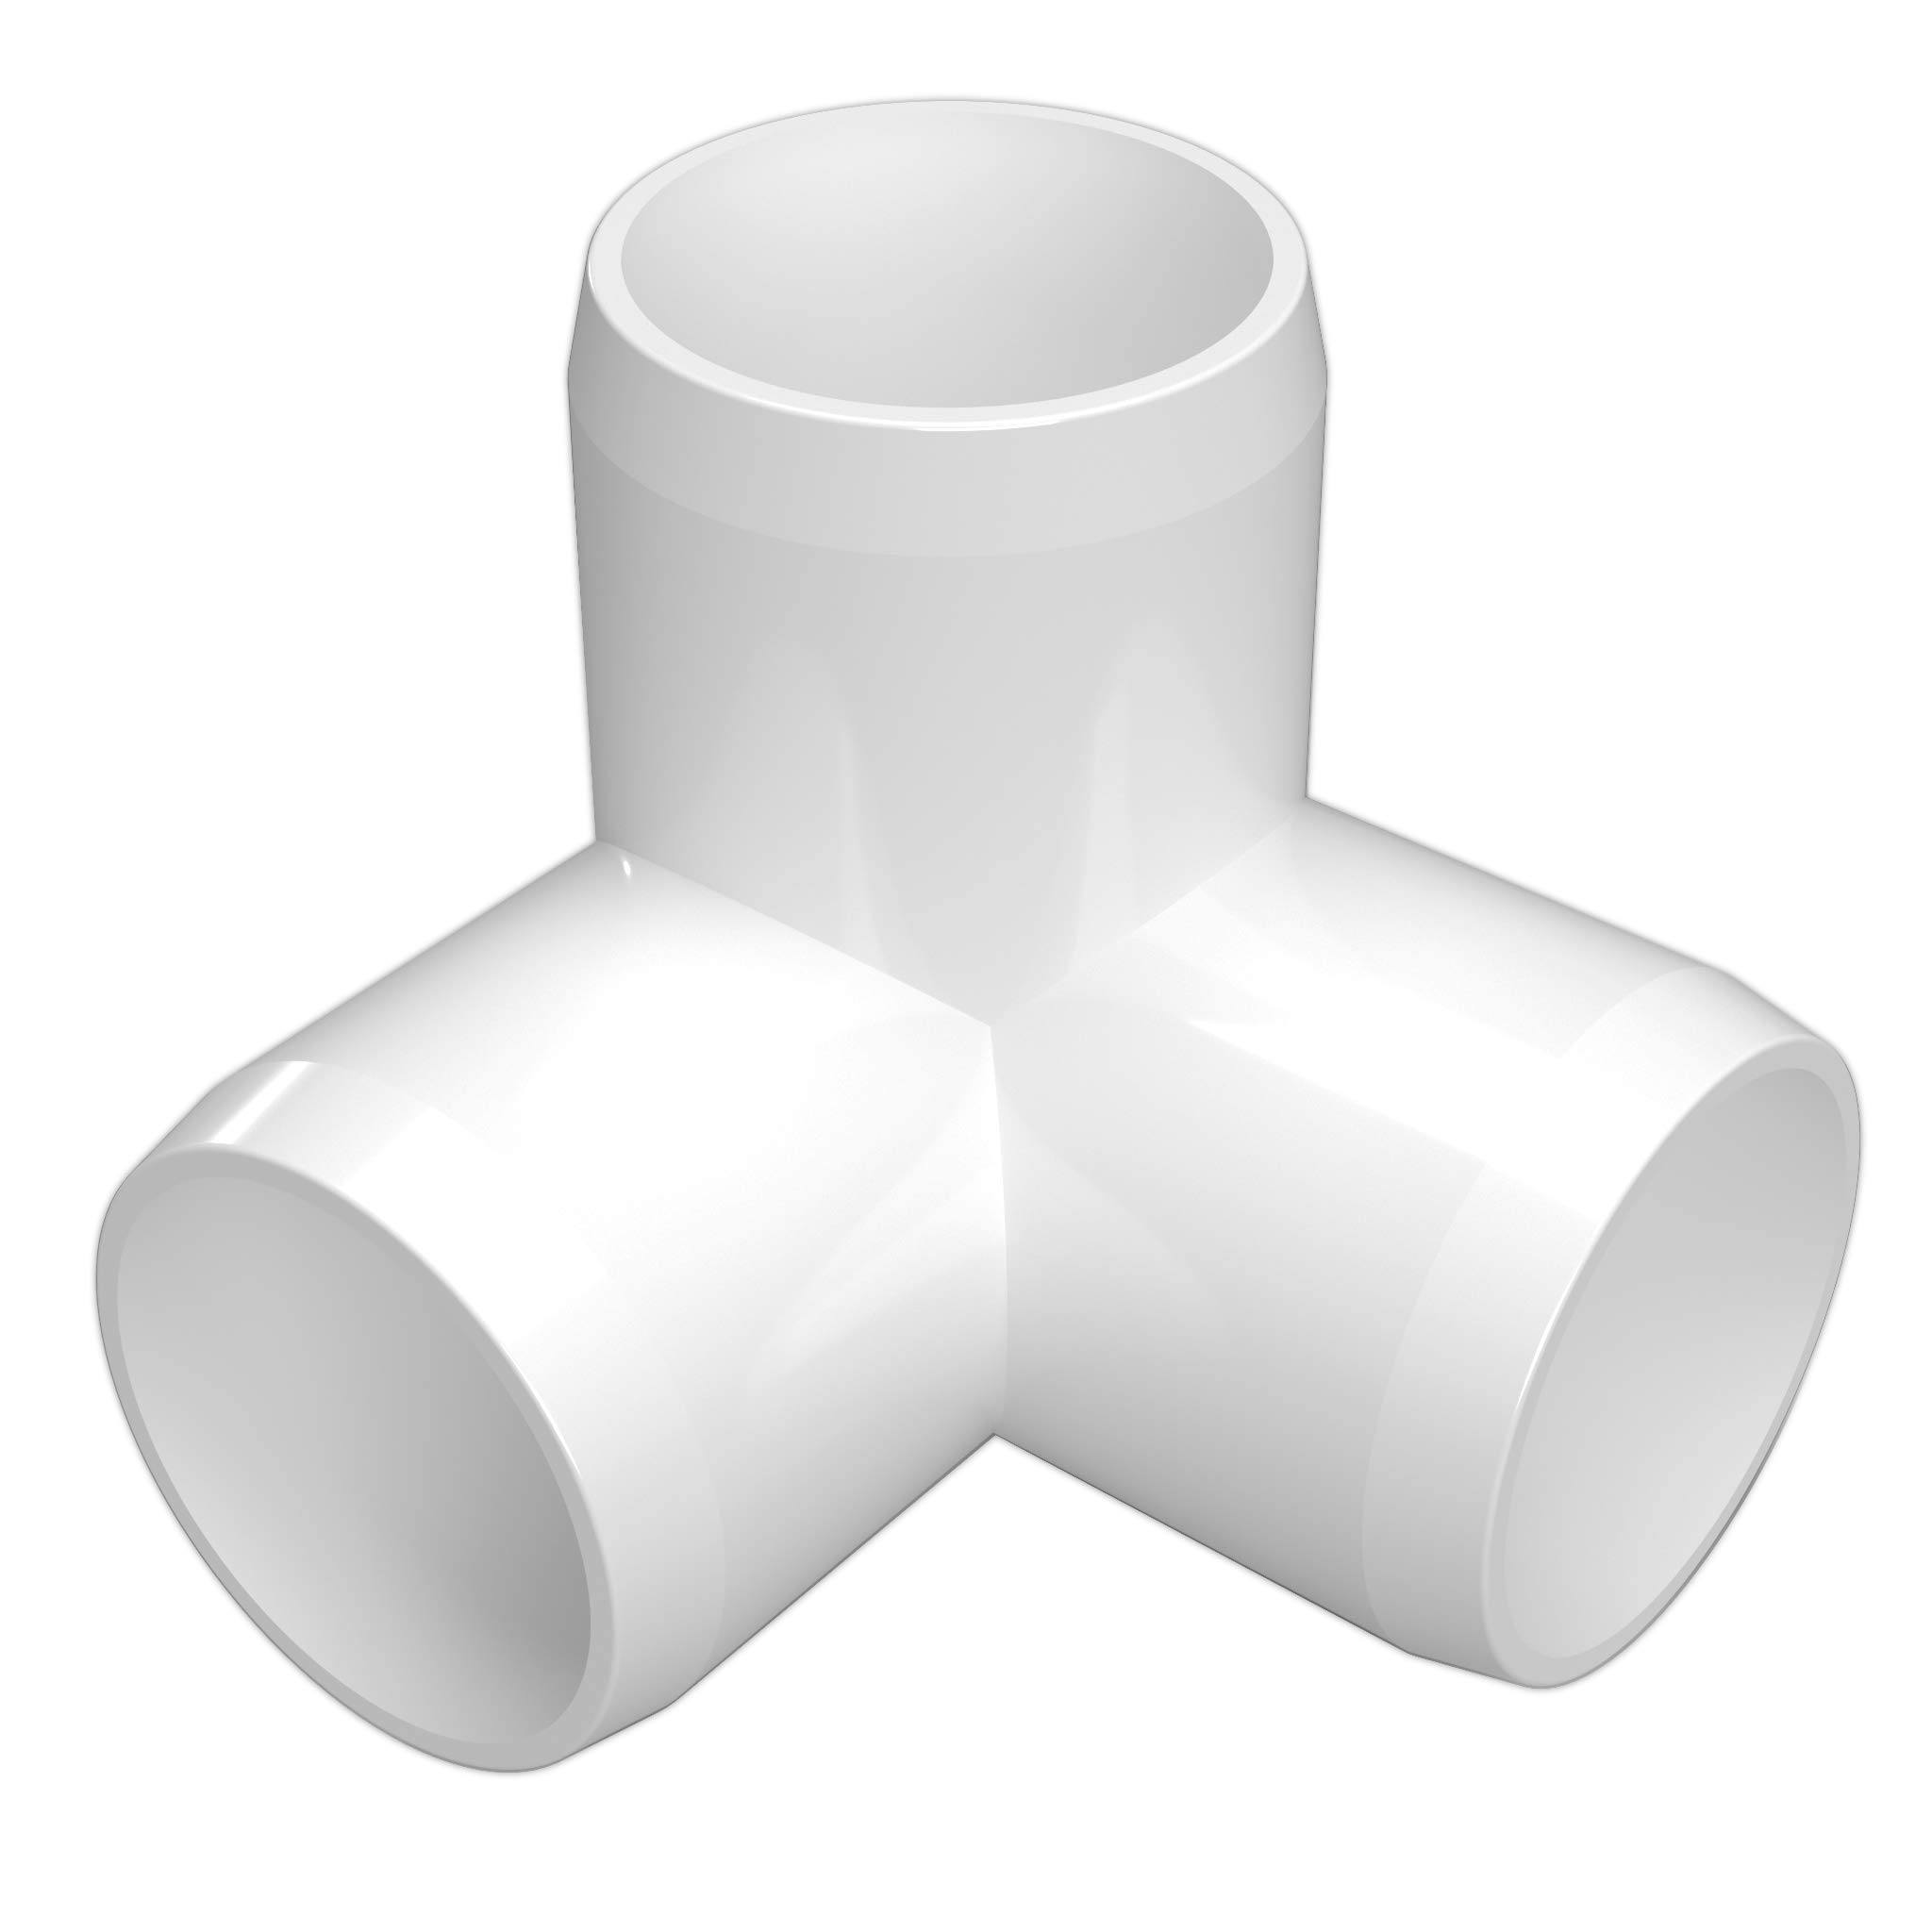 FORMUFIT F1123WE-WH-4 3-Way Elbow PVC Fitting, Furniture Grade, 1-1/2'' Size, White (Pack of 4)